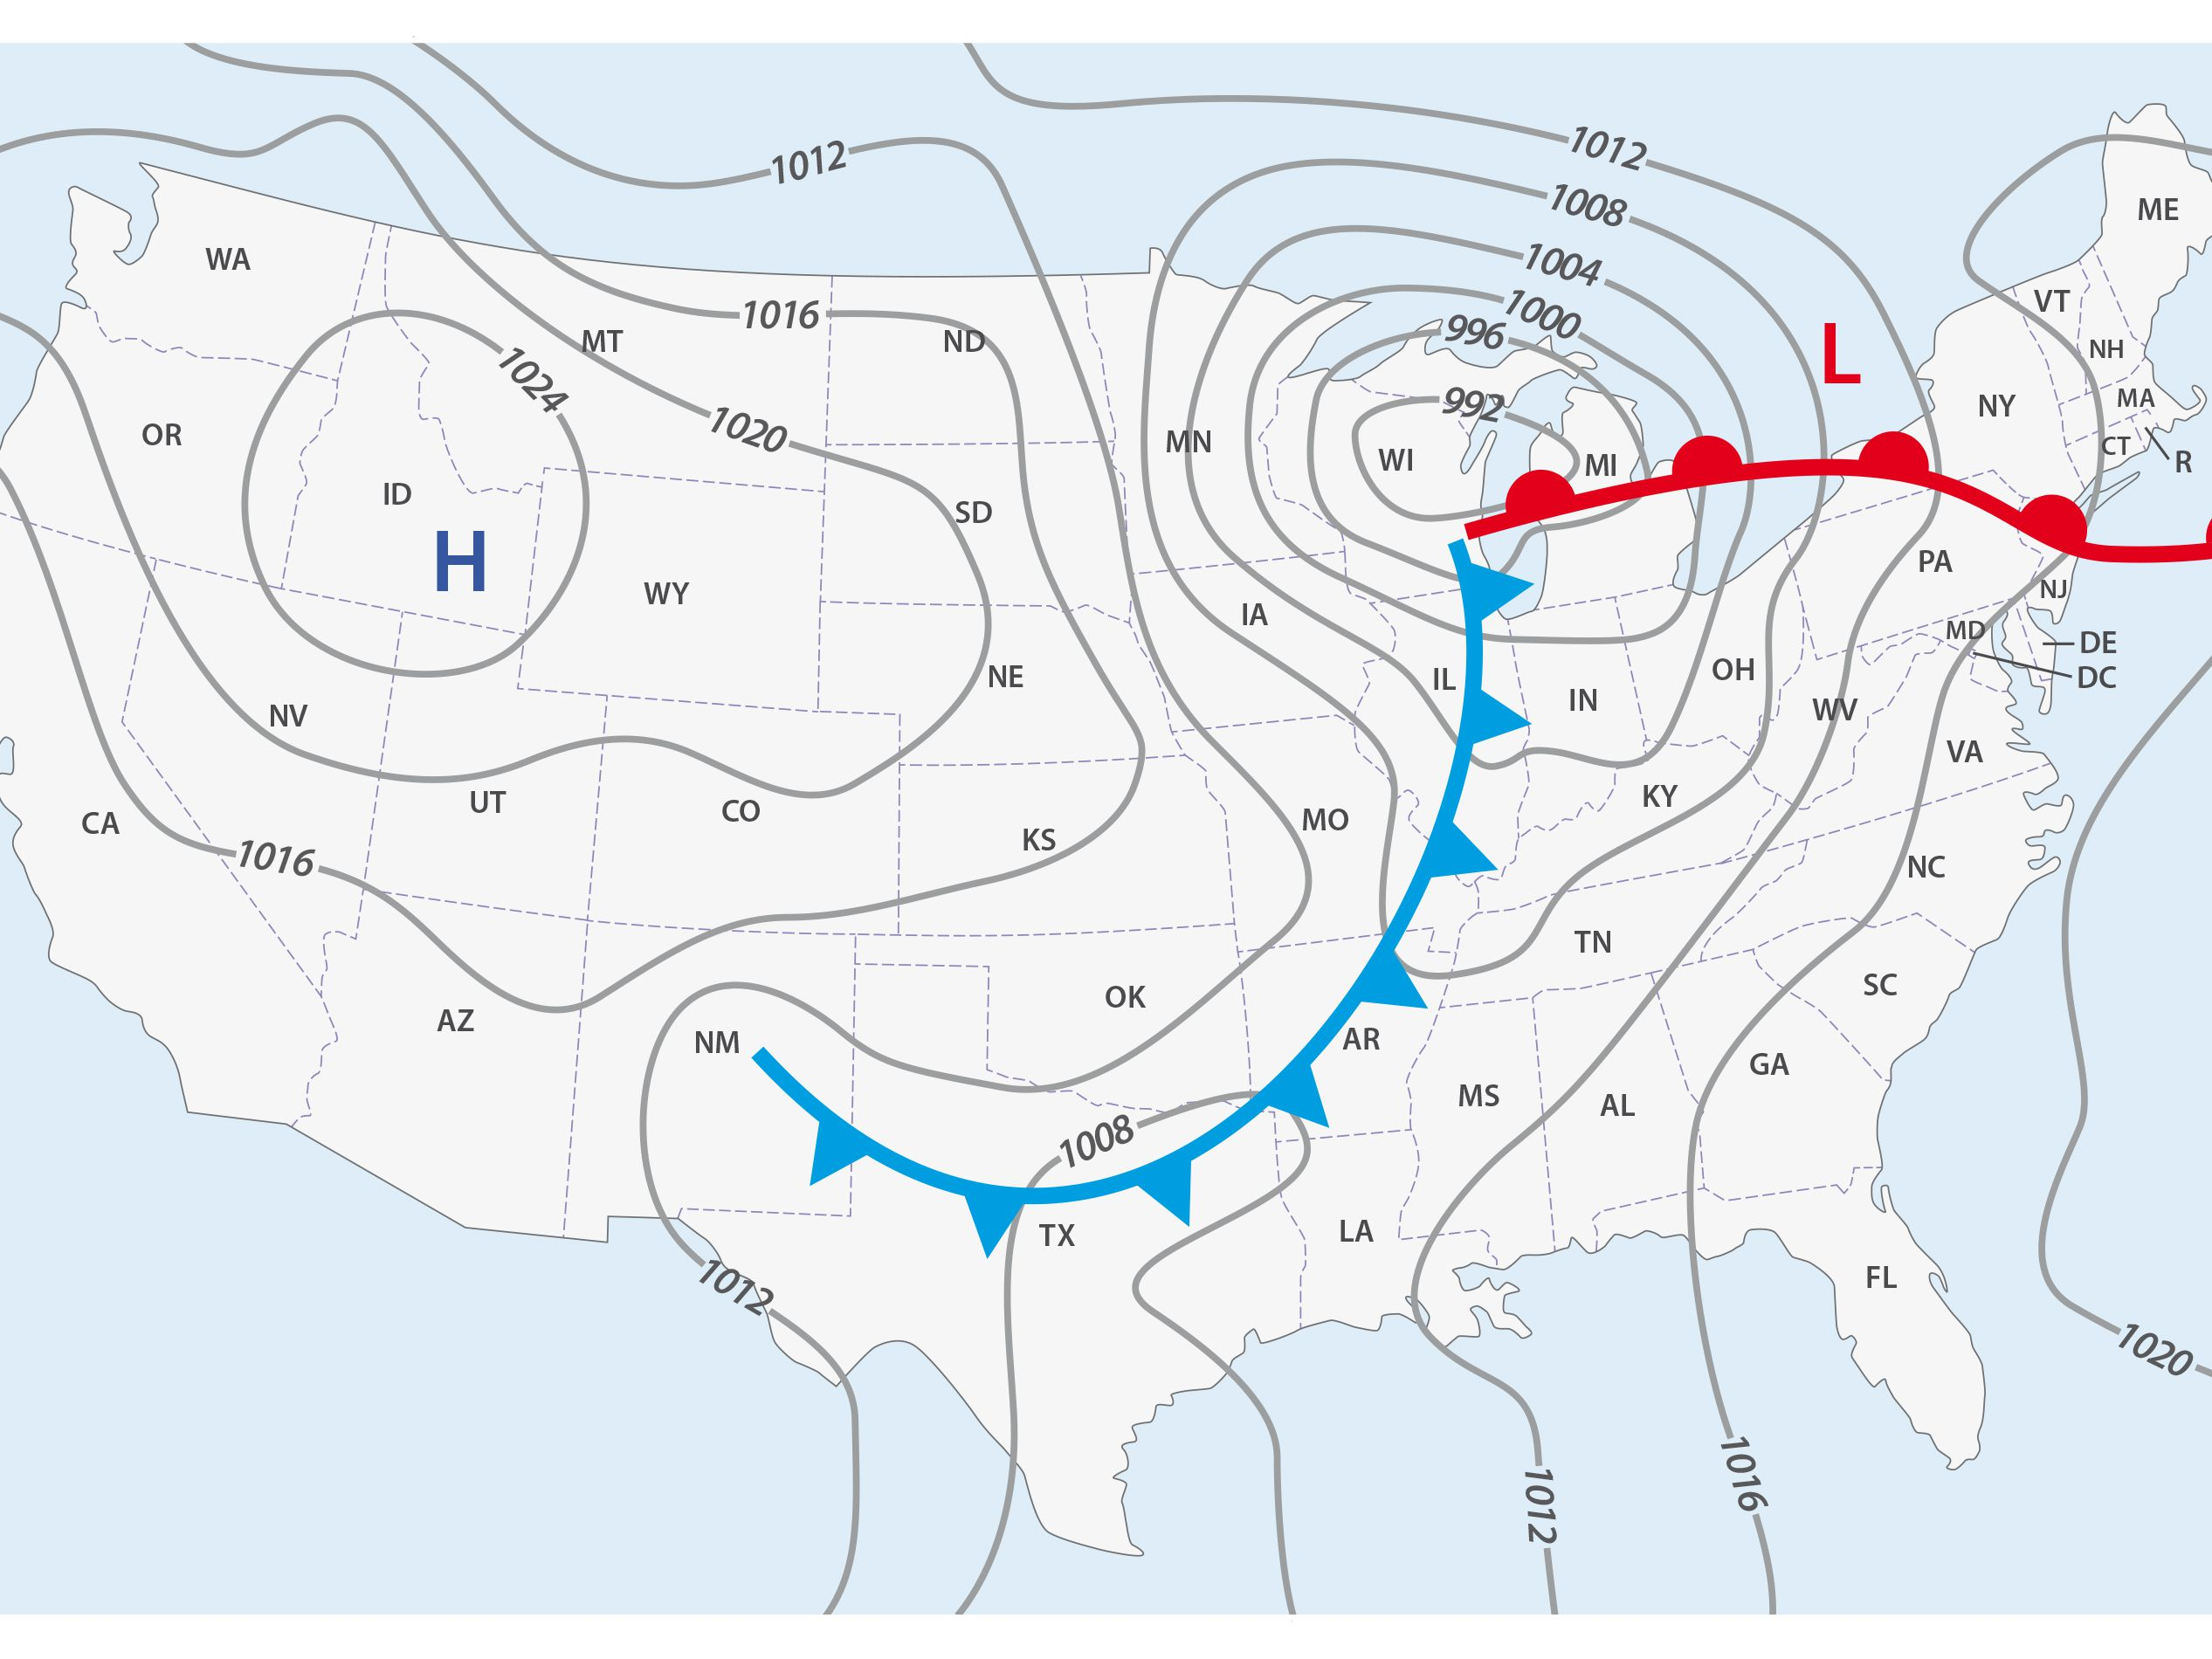 Weather Map With Fronts Do You Know What a Weather Front Is?